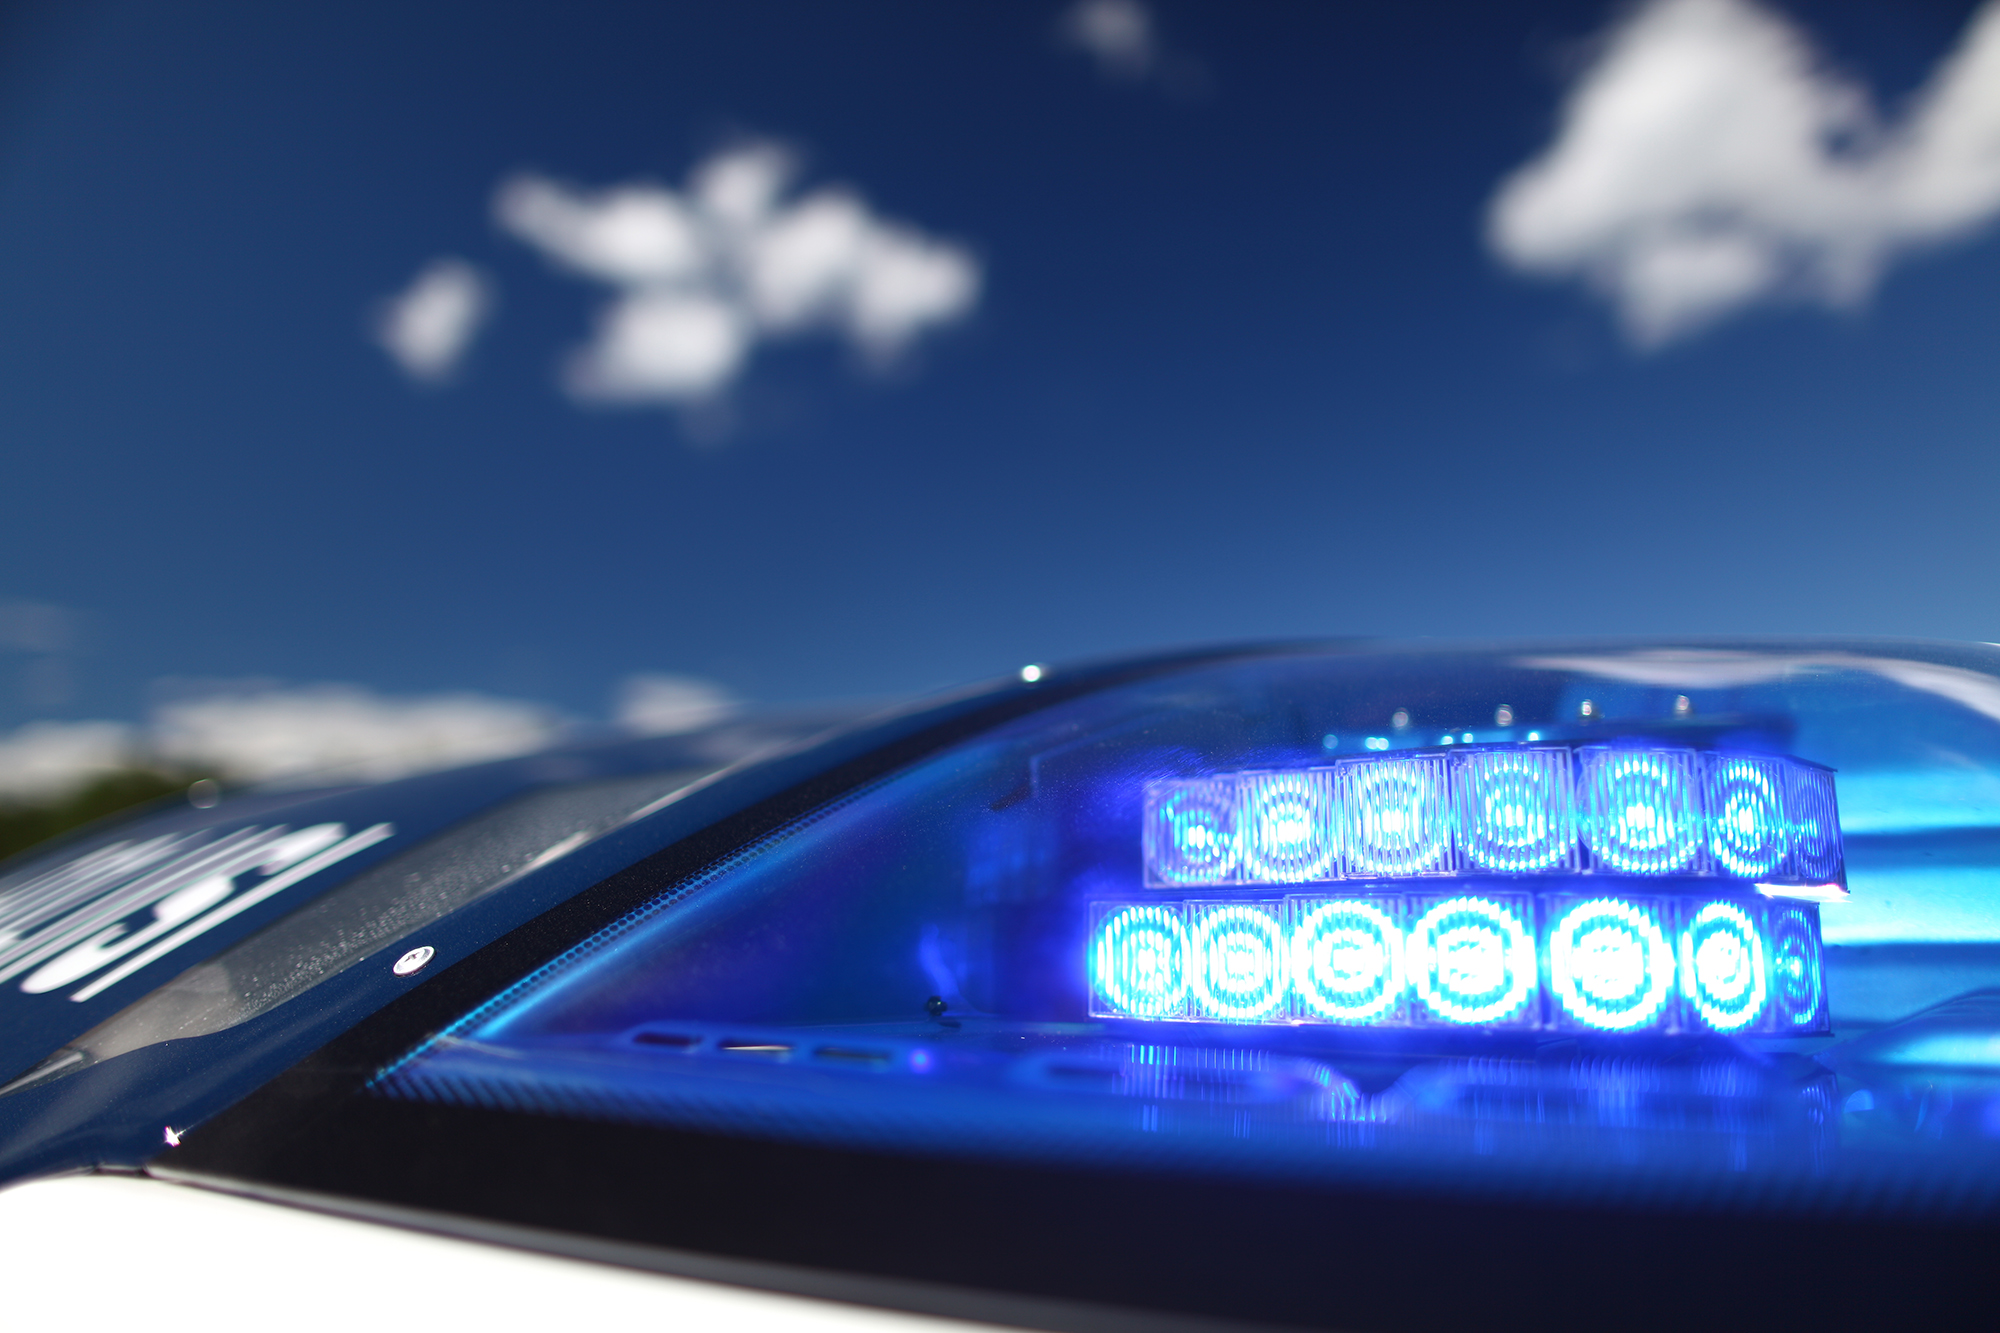 A close-up image of a police car's flashing light, with blue sky in the background.